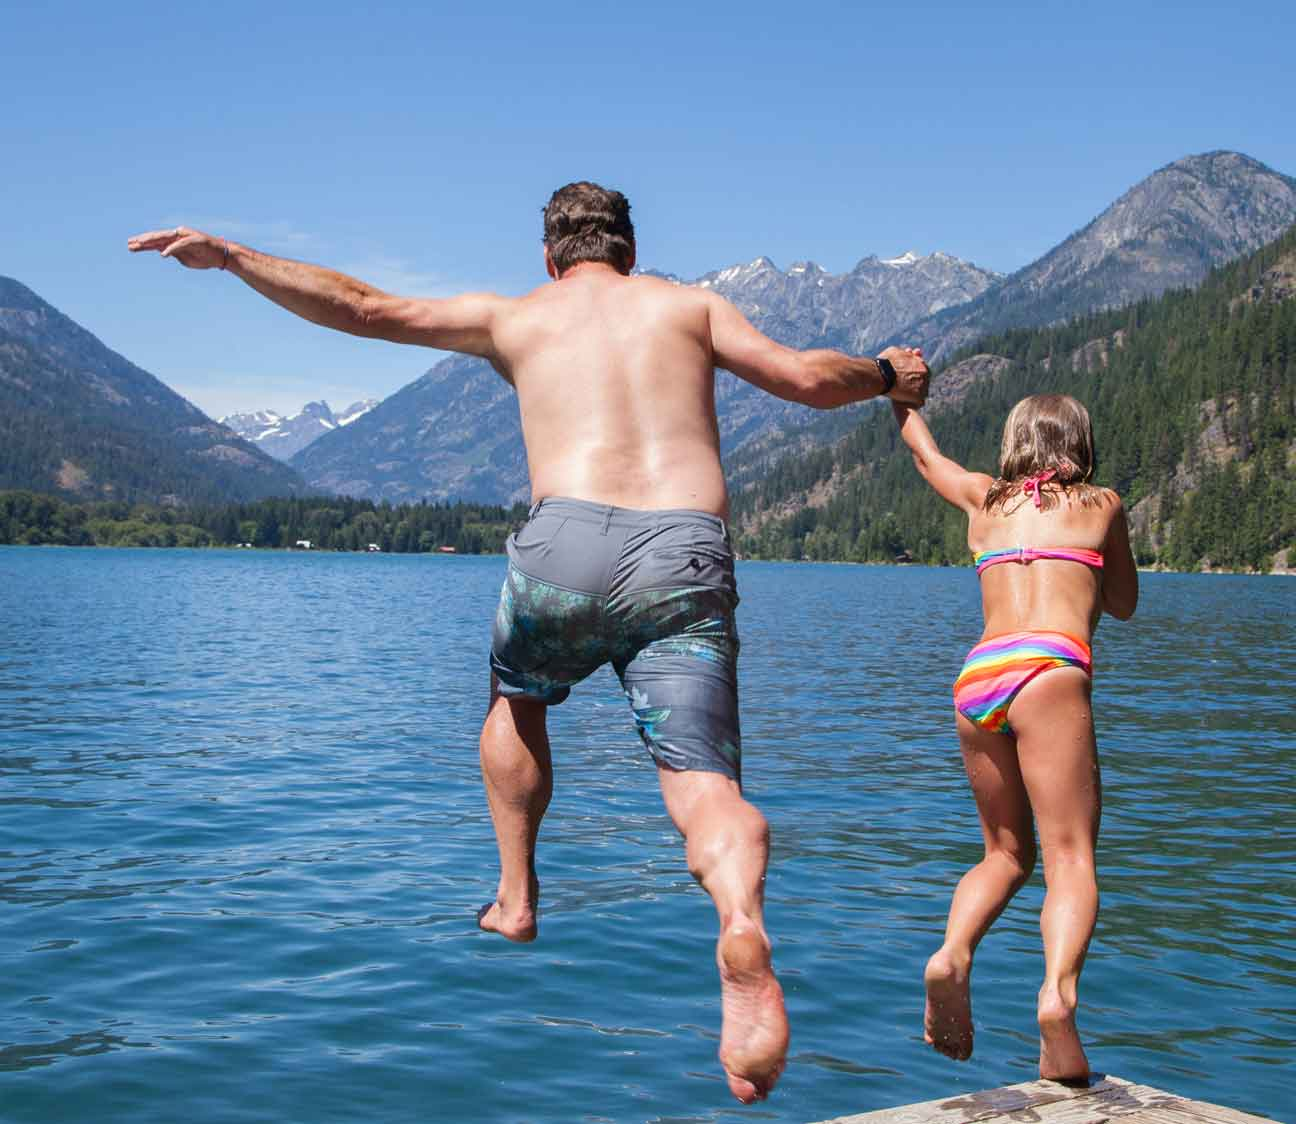 Jumping into Lake Chelan